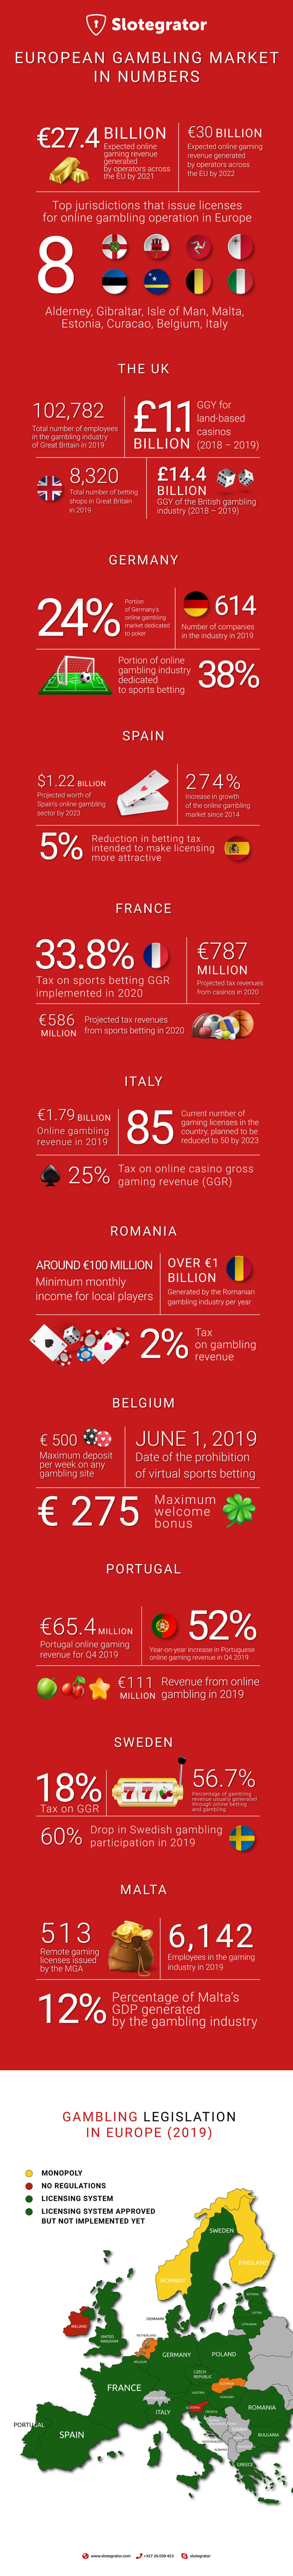 European Gambling Market in Numbers